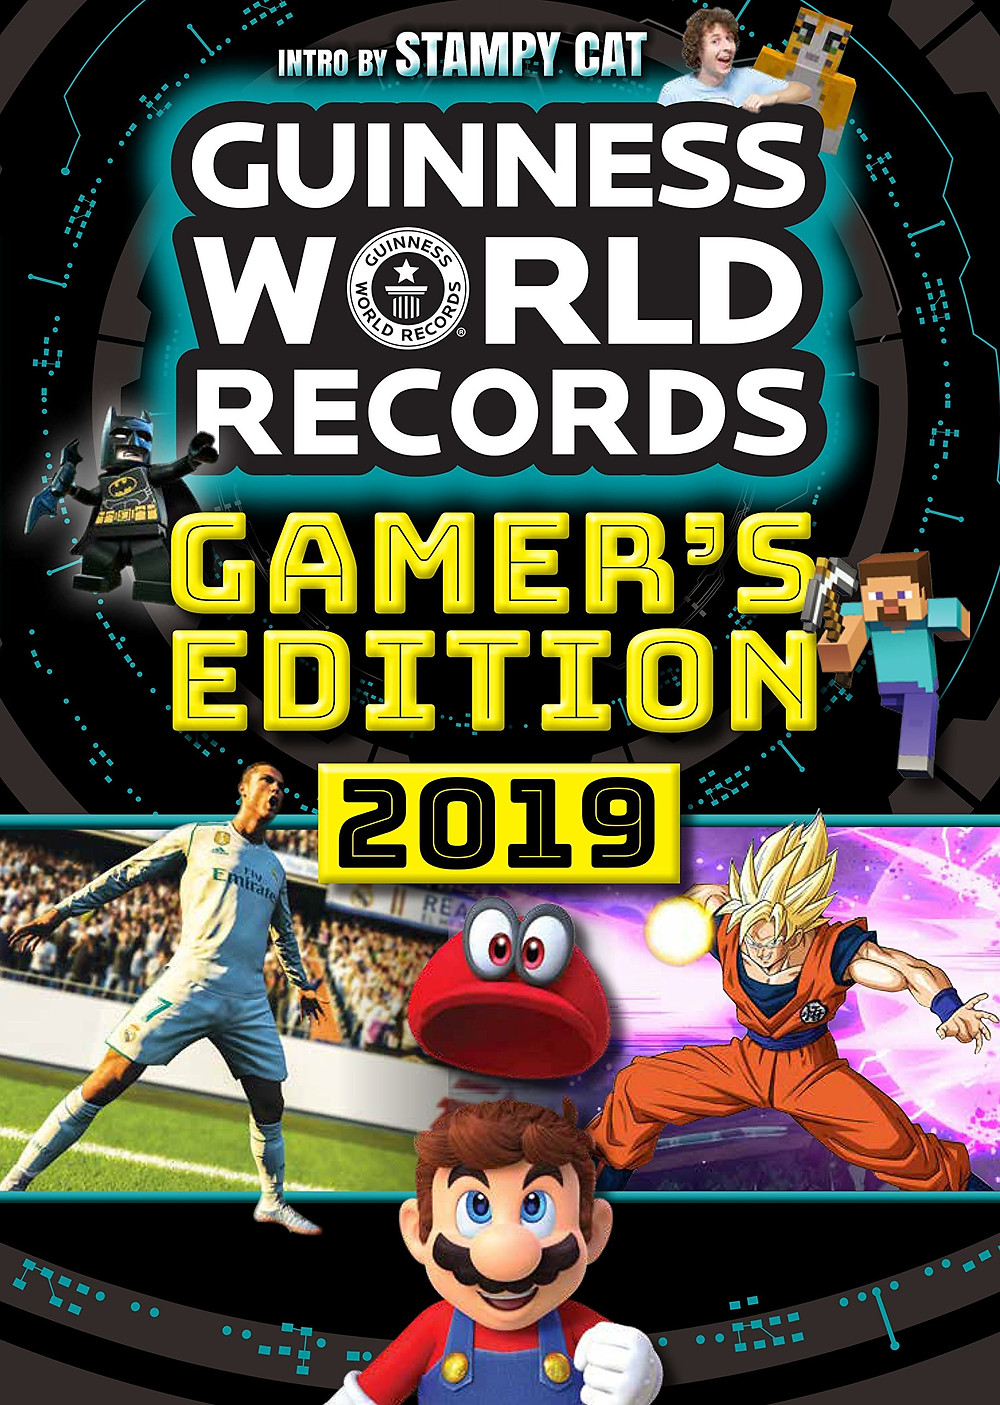 Cover of Guinness World Records Gamer's Edition 2019